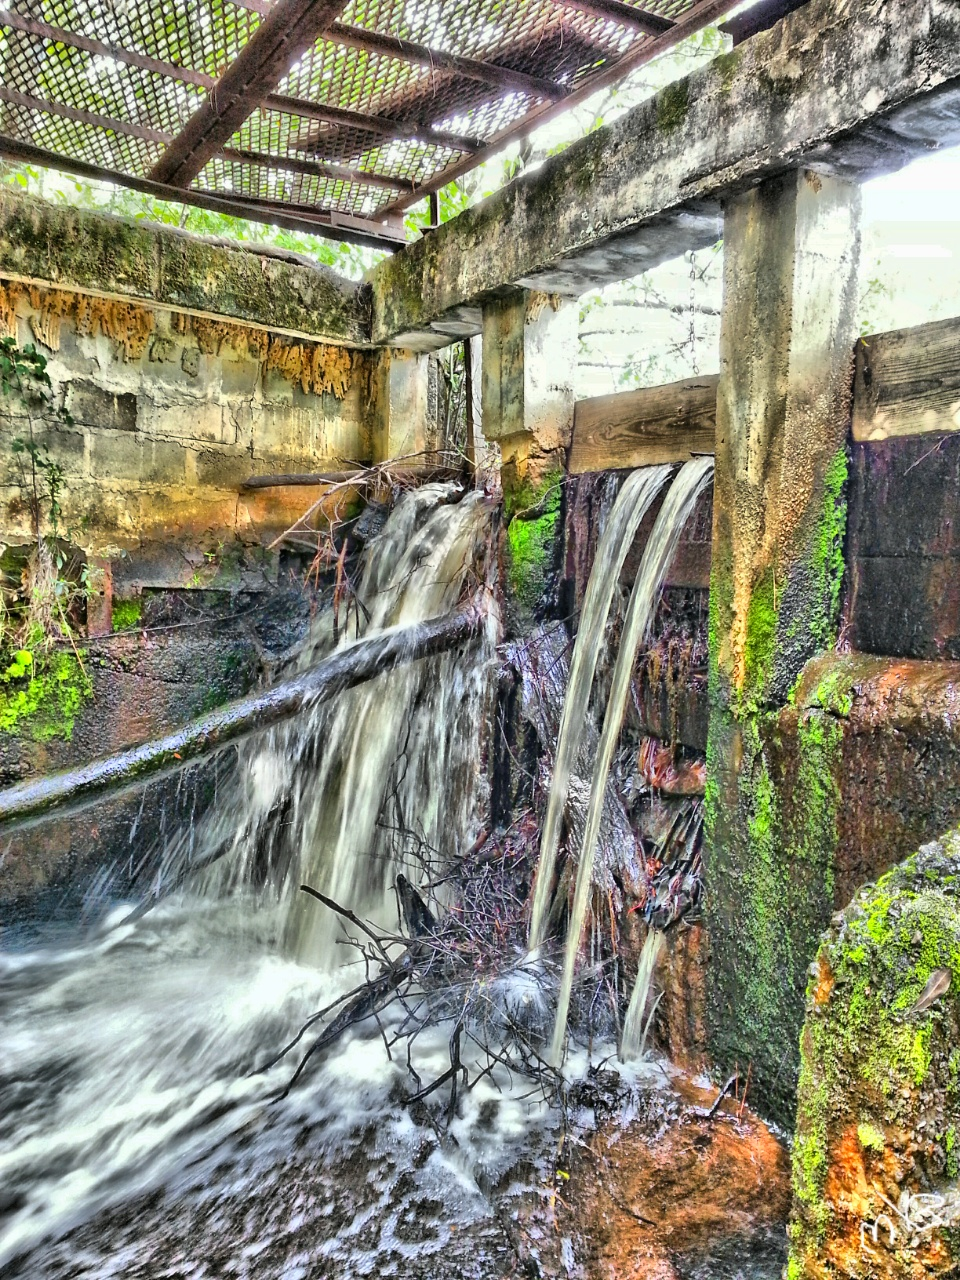 Old Spillway dam on the Ohoopee River by innovision237